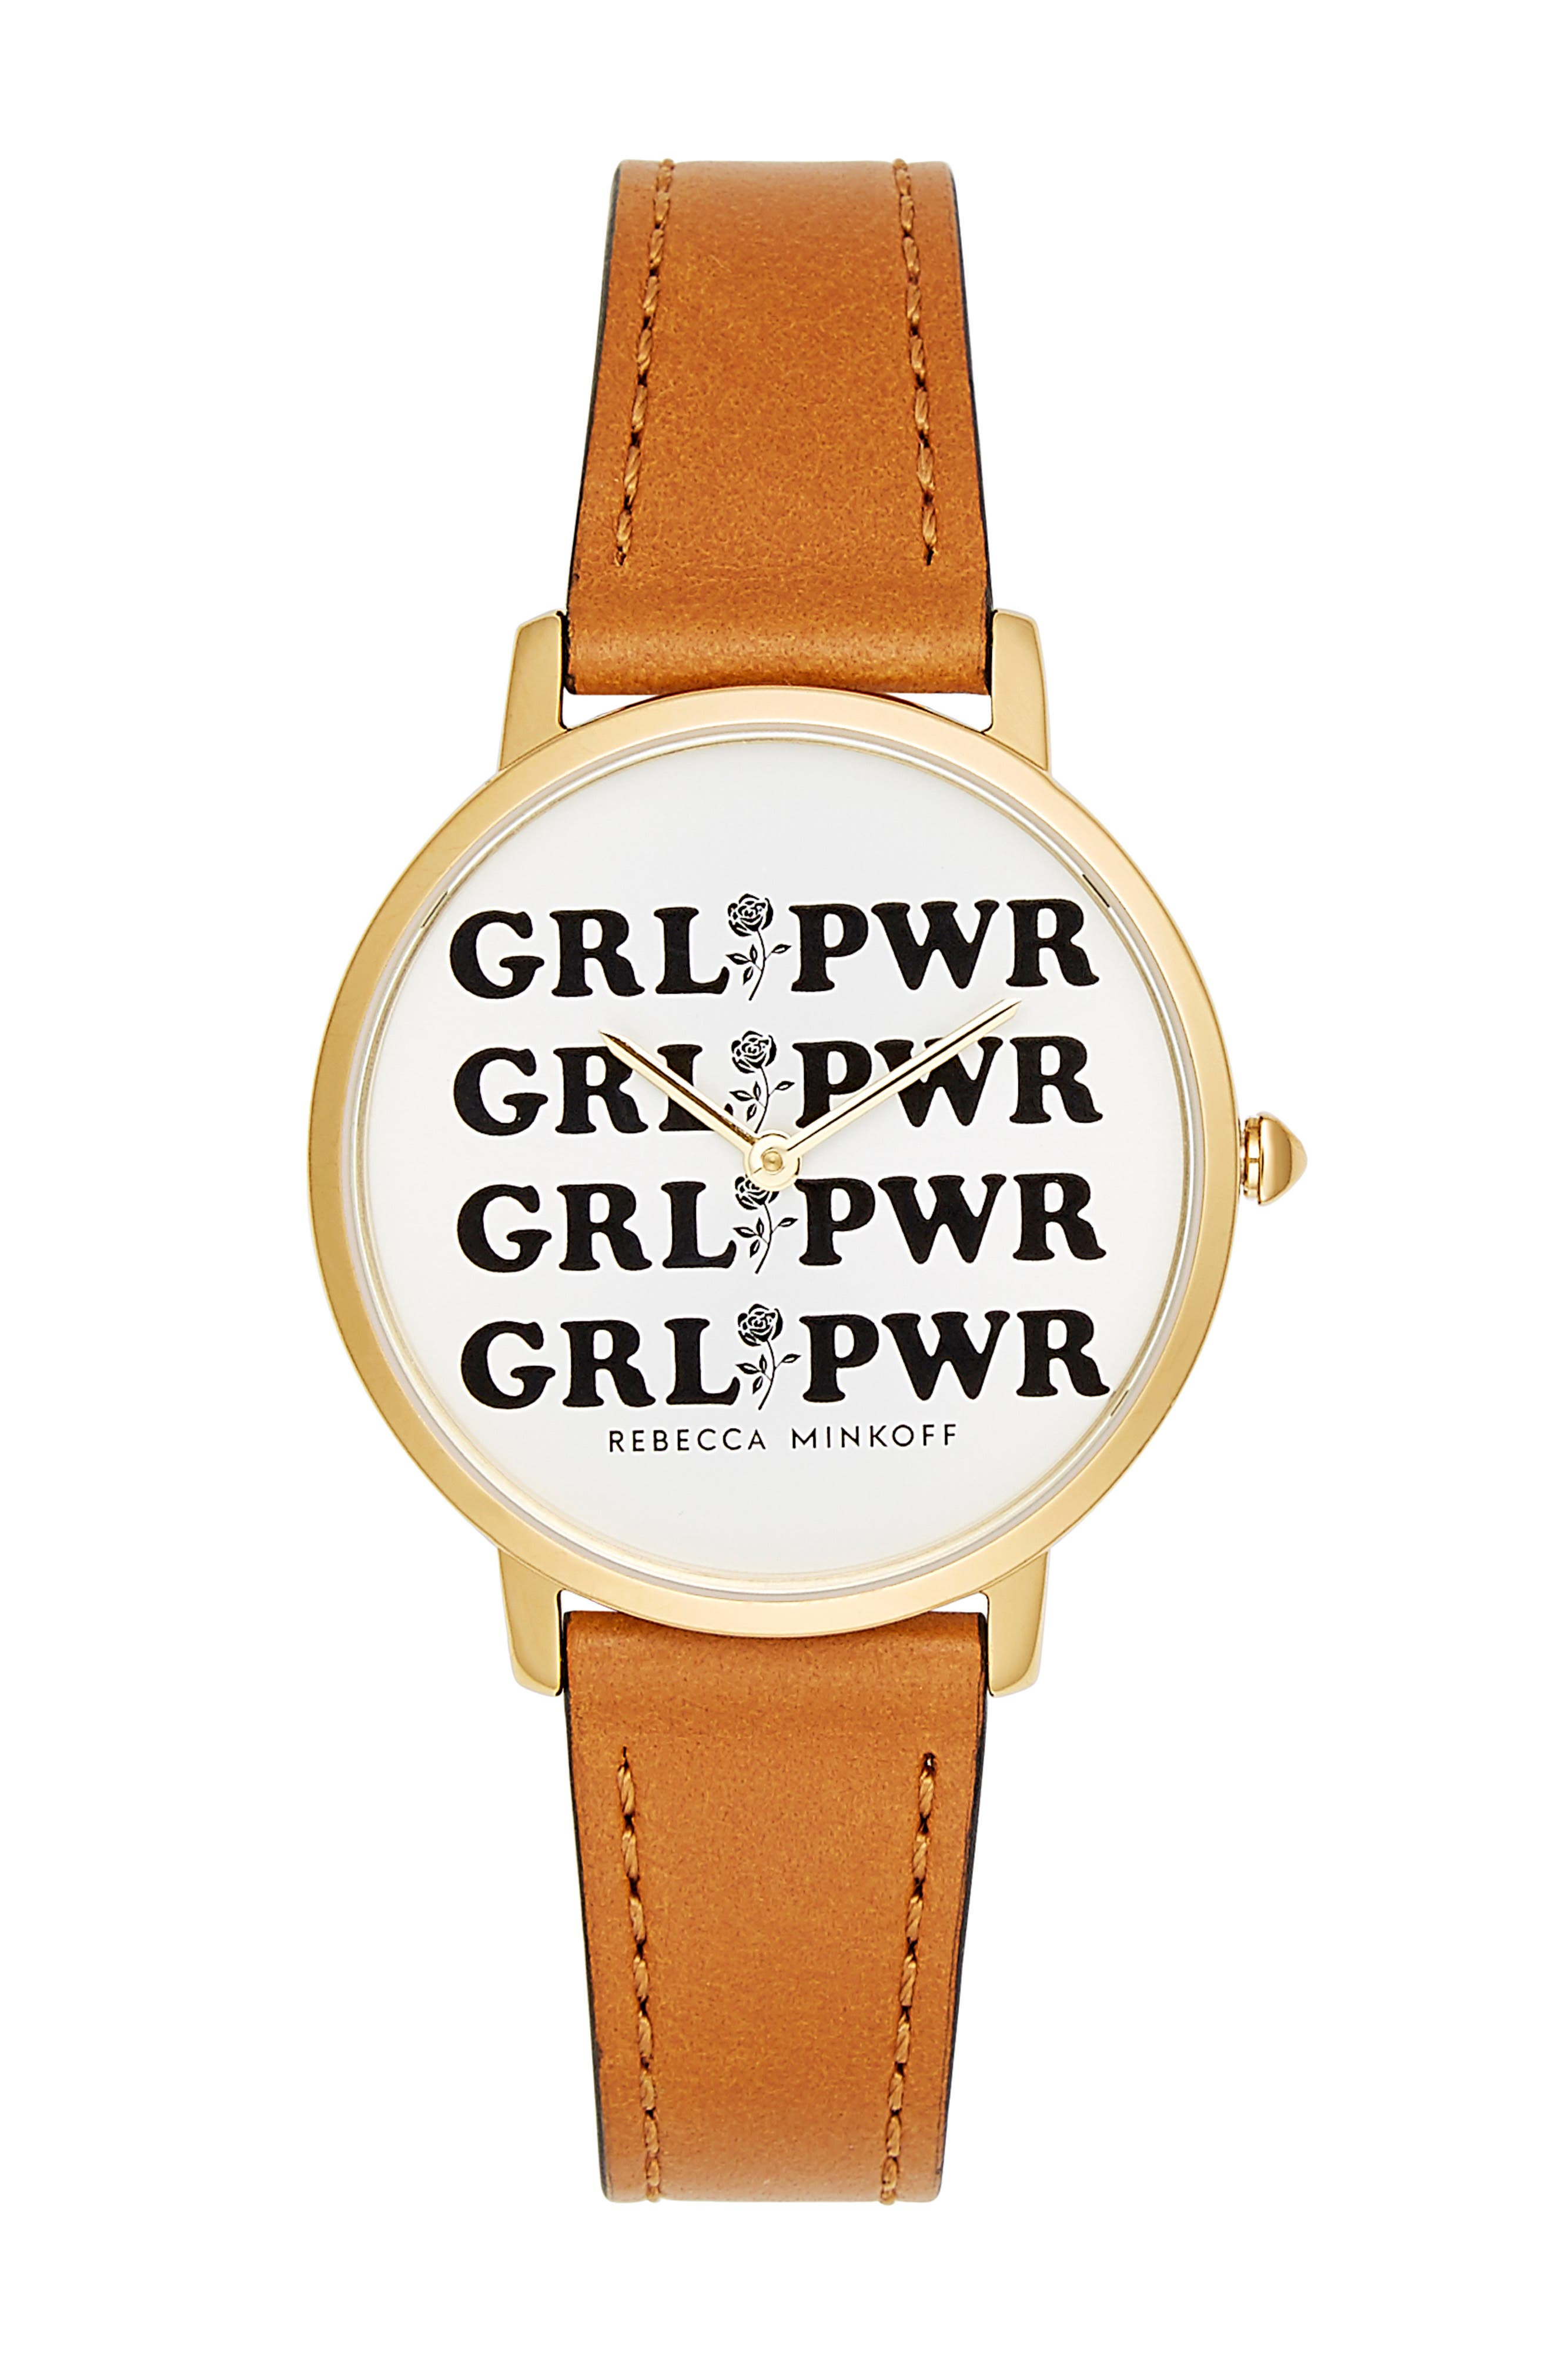 Rebeca Minkoff Major GRL PWR Leather Strap Watch, 35mm,                             Main thumbnail 1, color,                             ALMOND/ SILVER/ GOLD